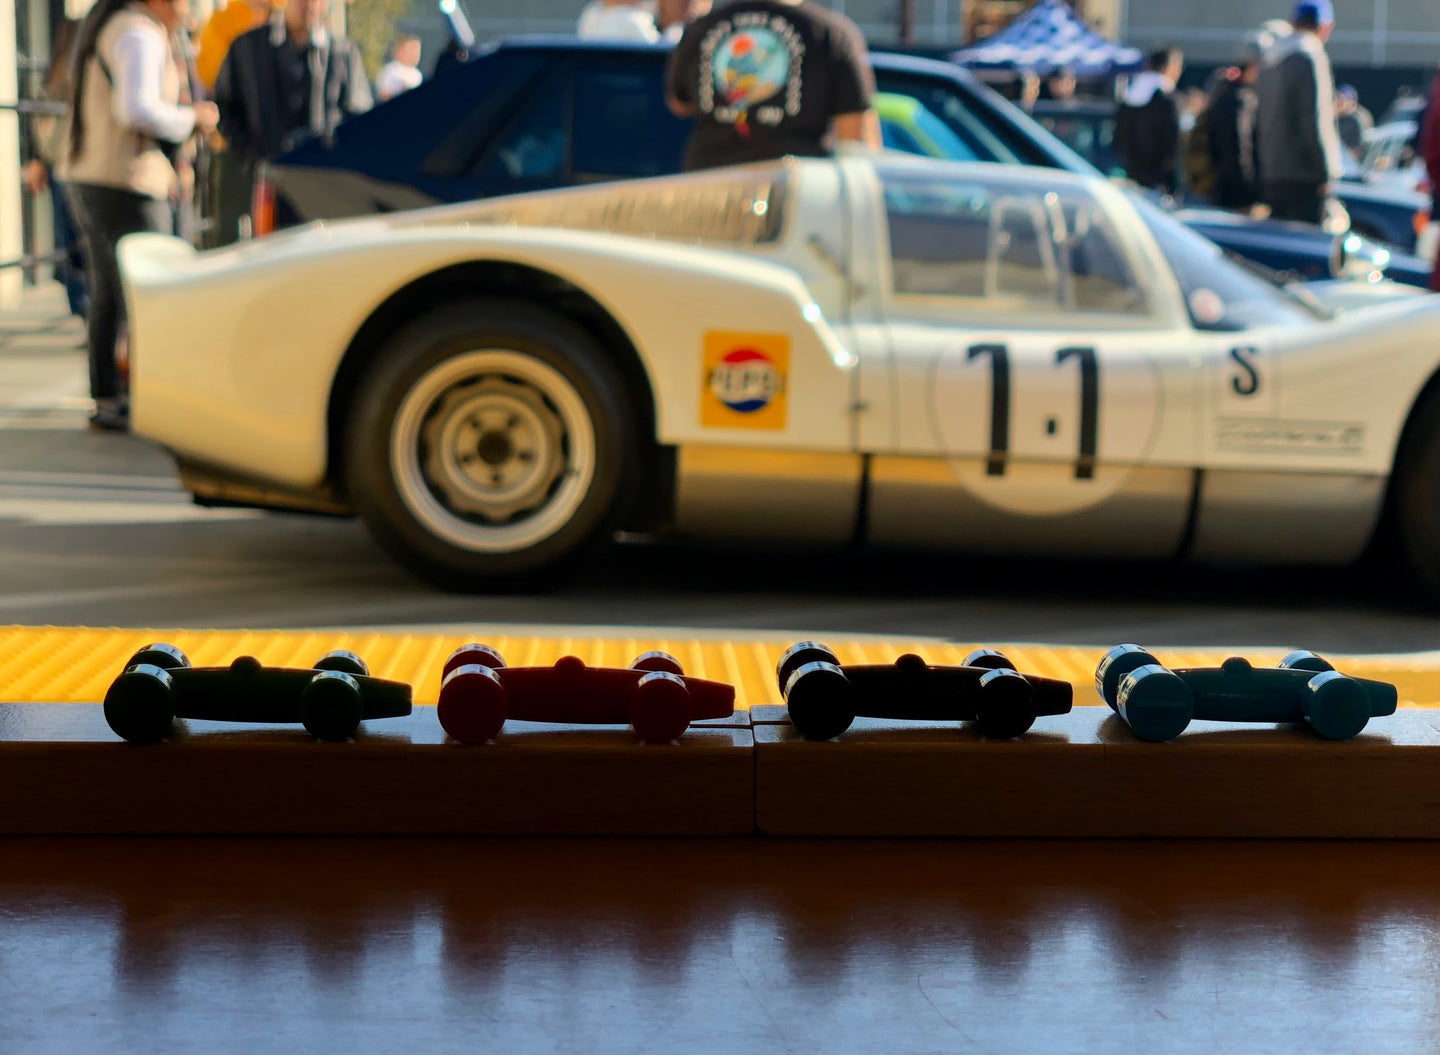 the LACORSA Grand Prix Board Game is fun at Cars and Coffee events